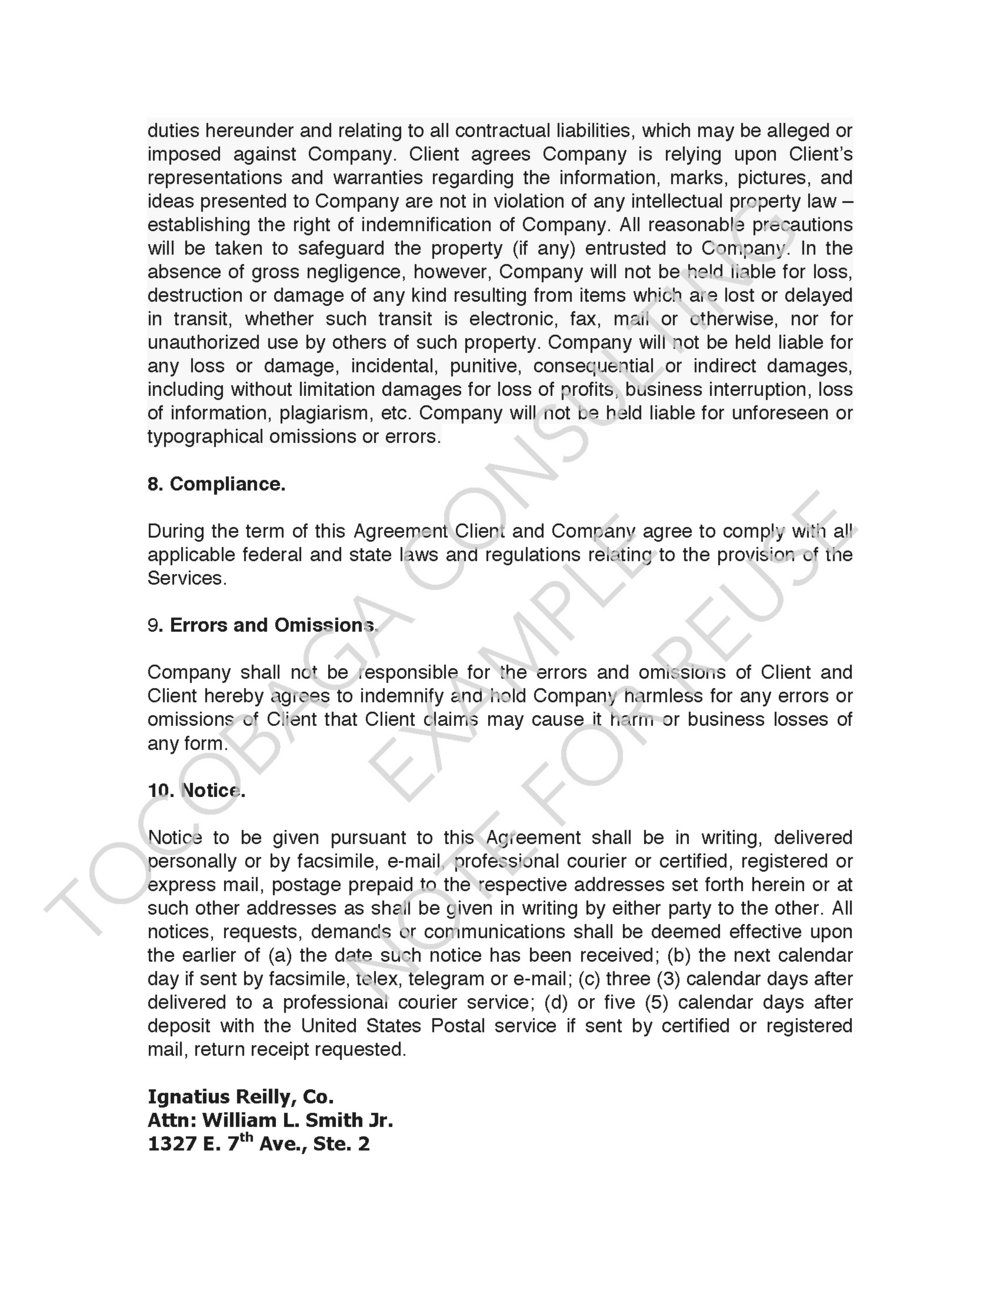 Company Services Agreement EXAMPLE_Page_05.jpg